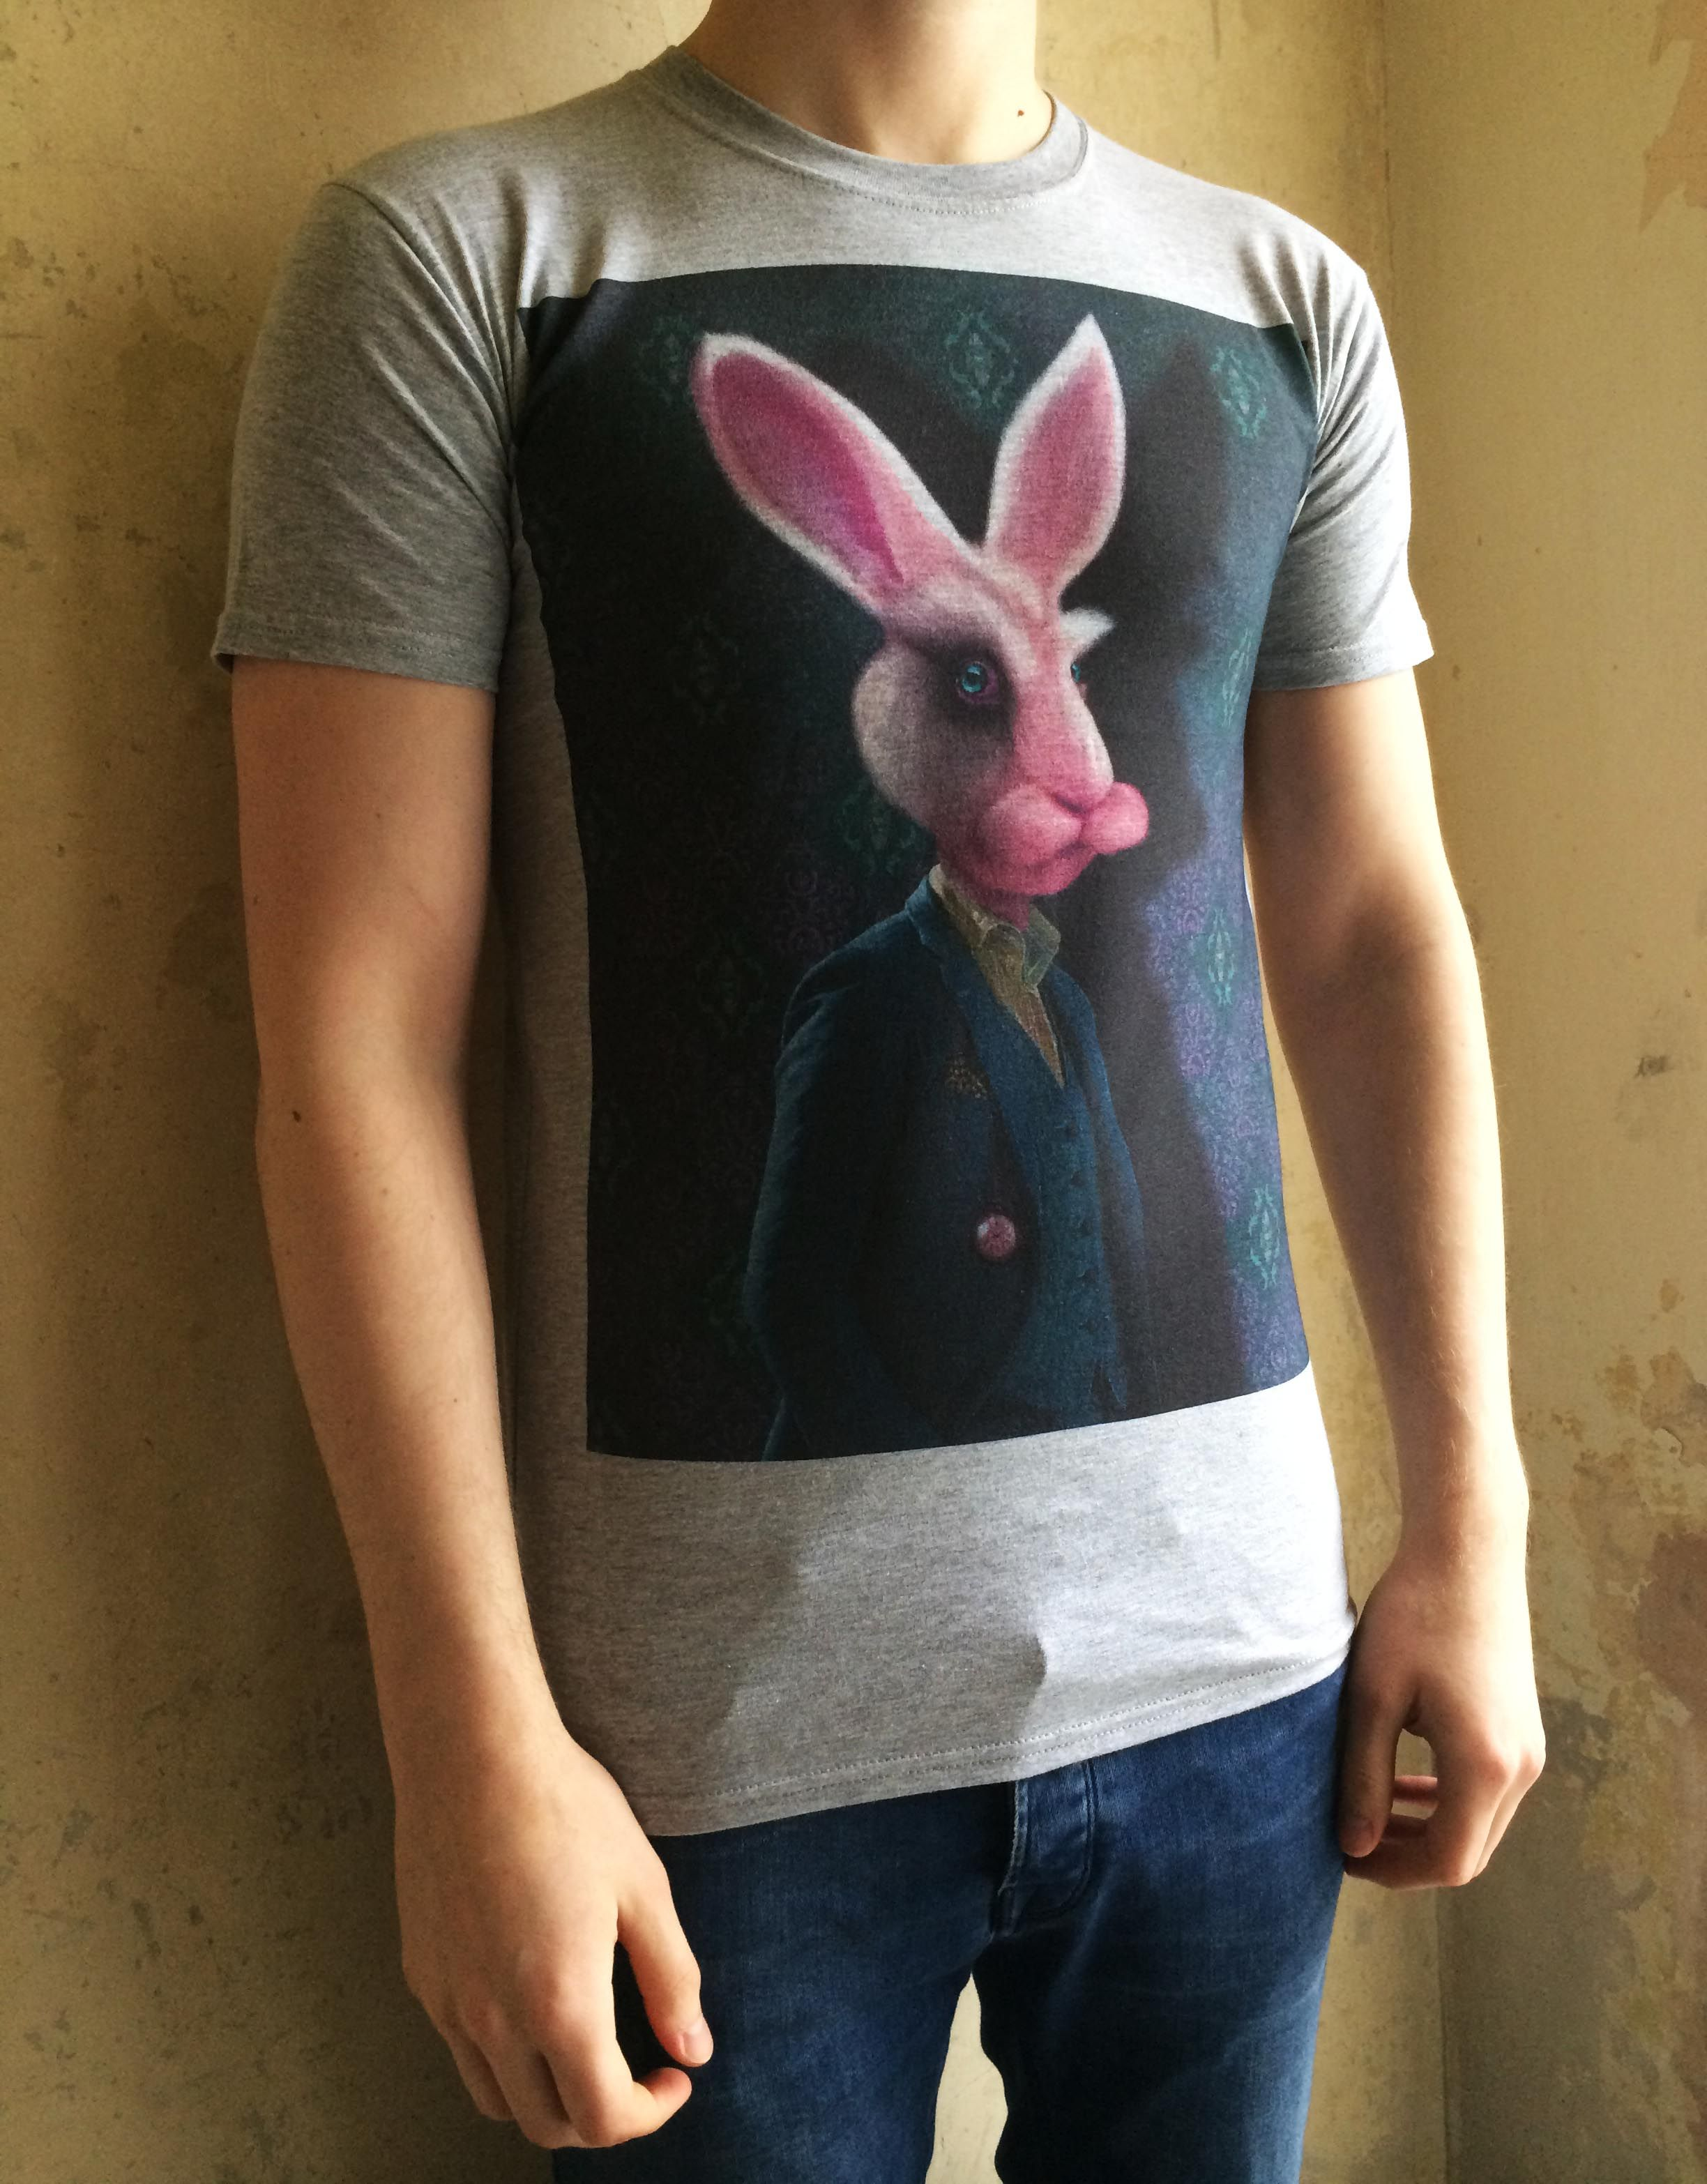 An Alternative Look At The White Rabbit But This Time As A